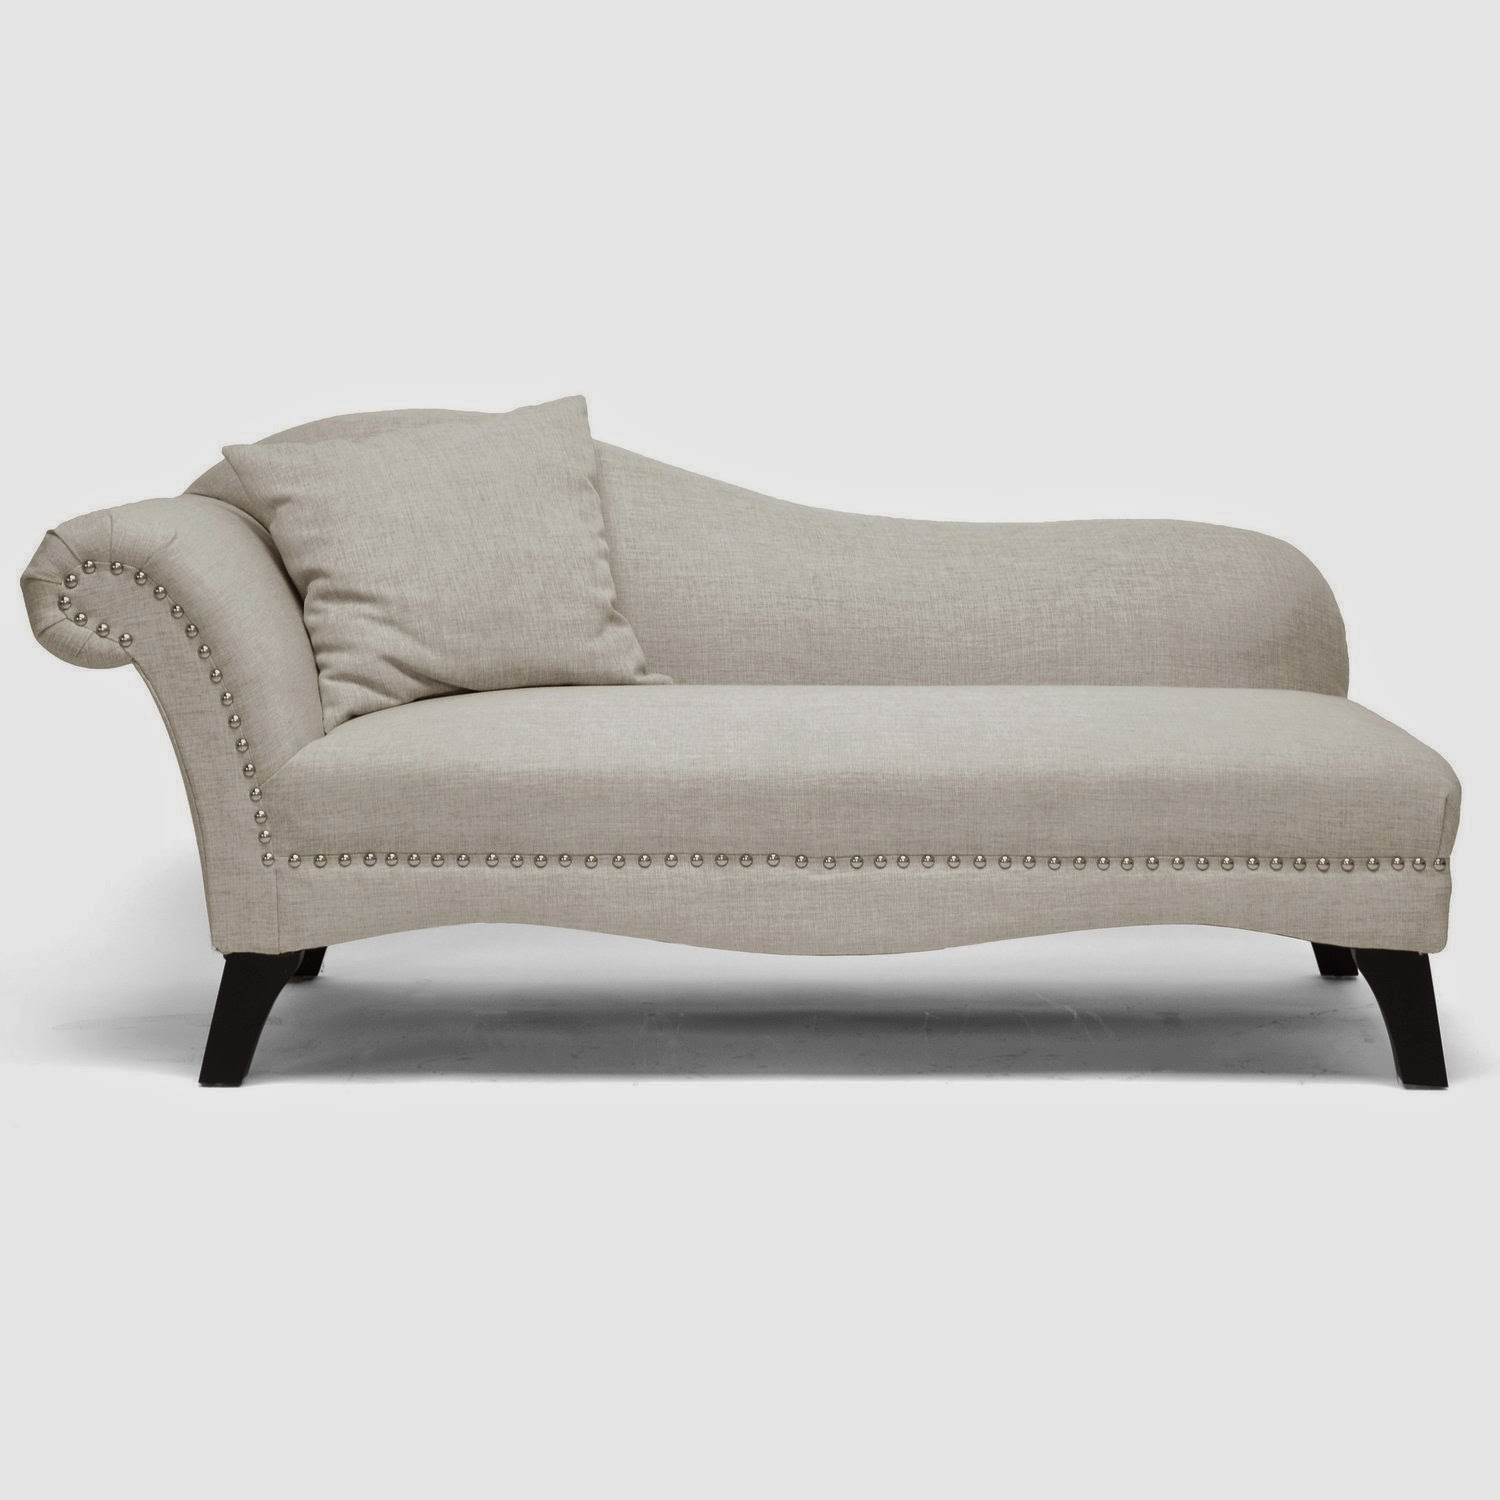 Chaise lounge sofa fainting couch for Fainting couch